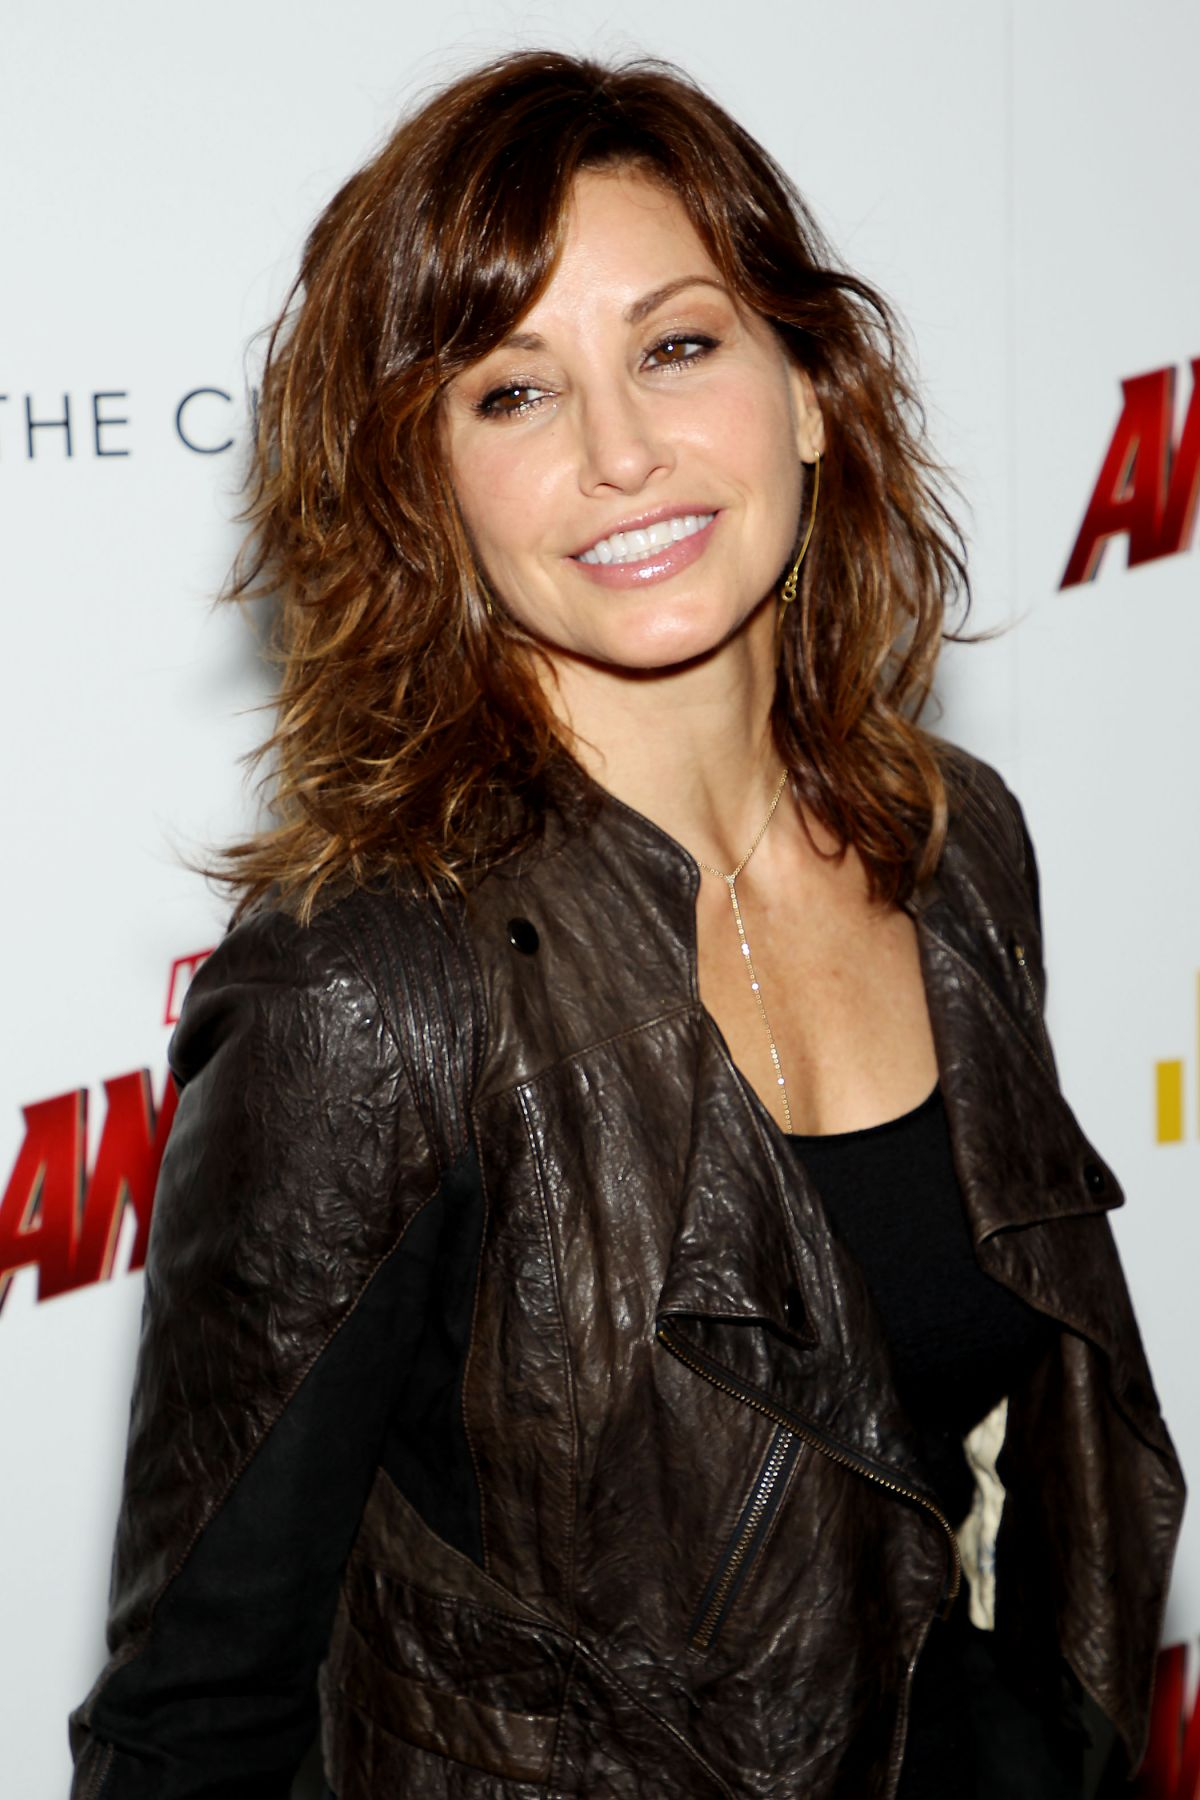 Gina Gershon At 'Ant-Man and The Wasp' film premiere, New ...